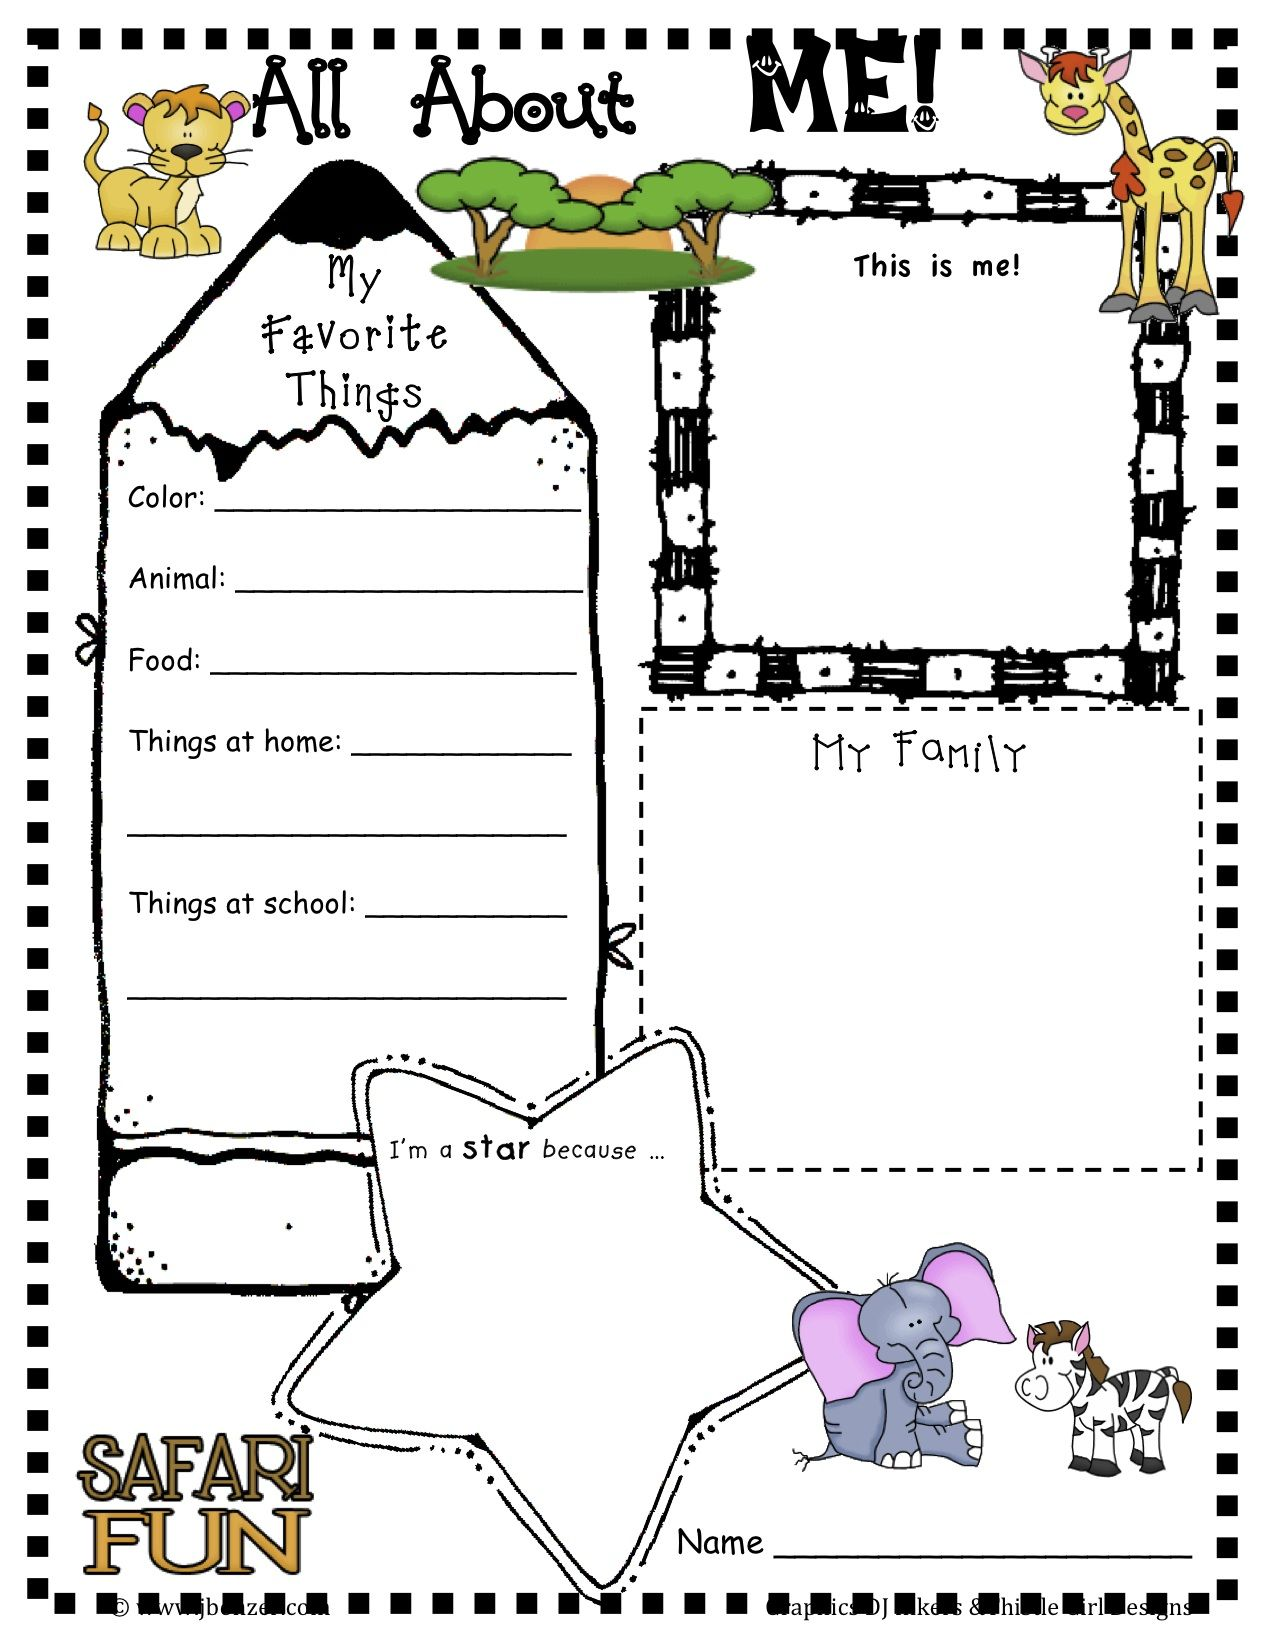 worksheet Free Printable School Worksheets loads of free printables not just for back to school writing school